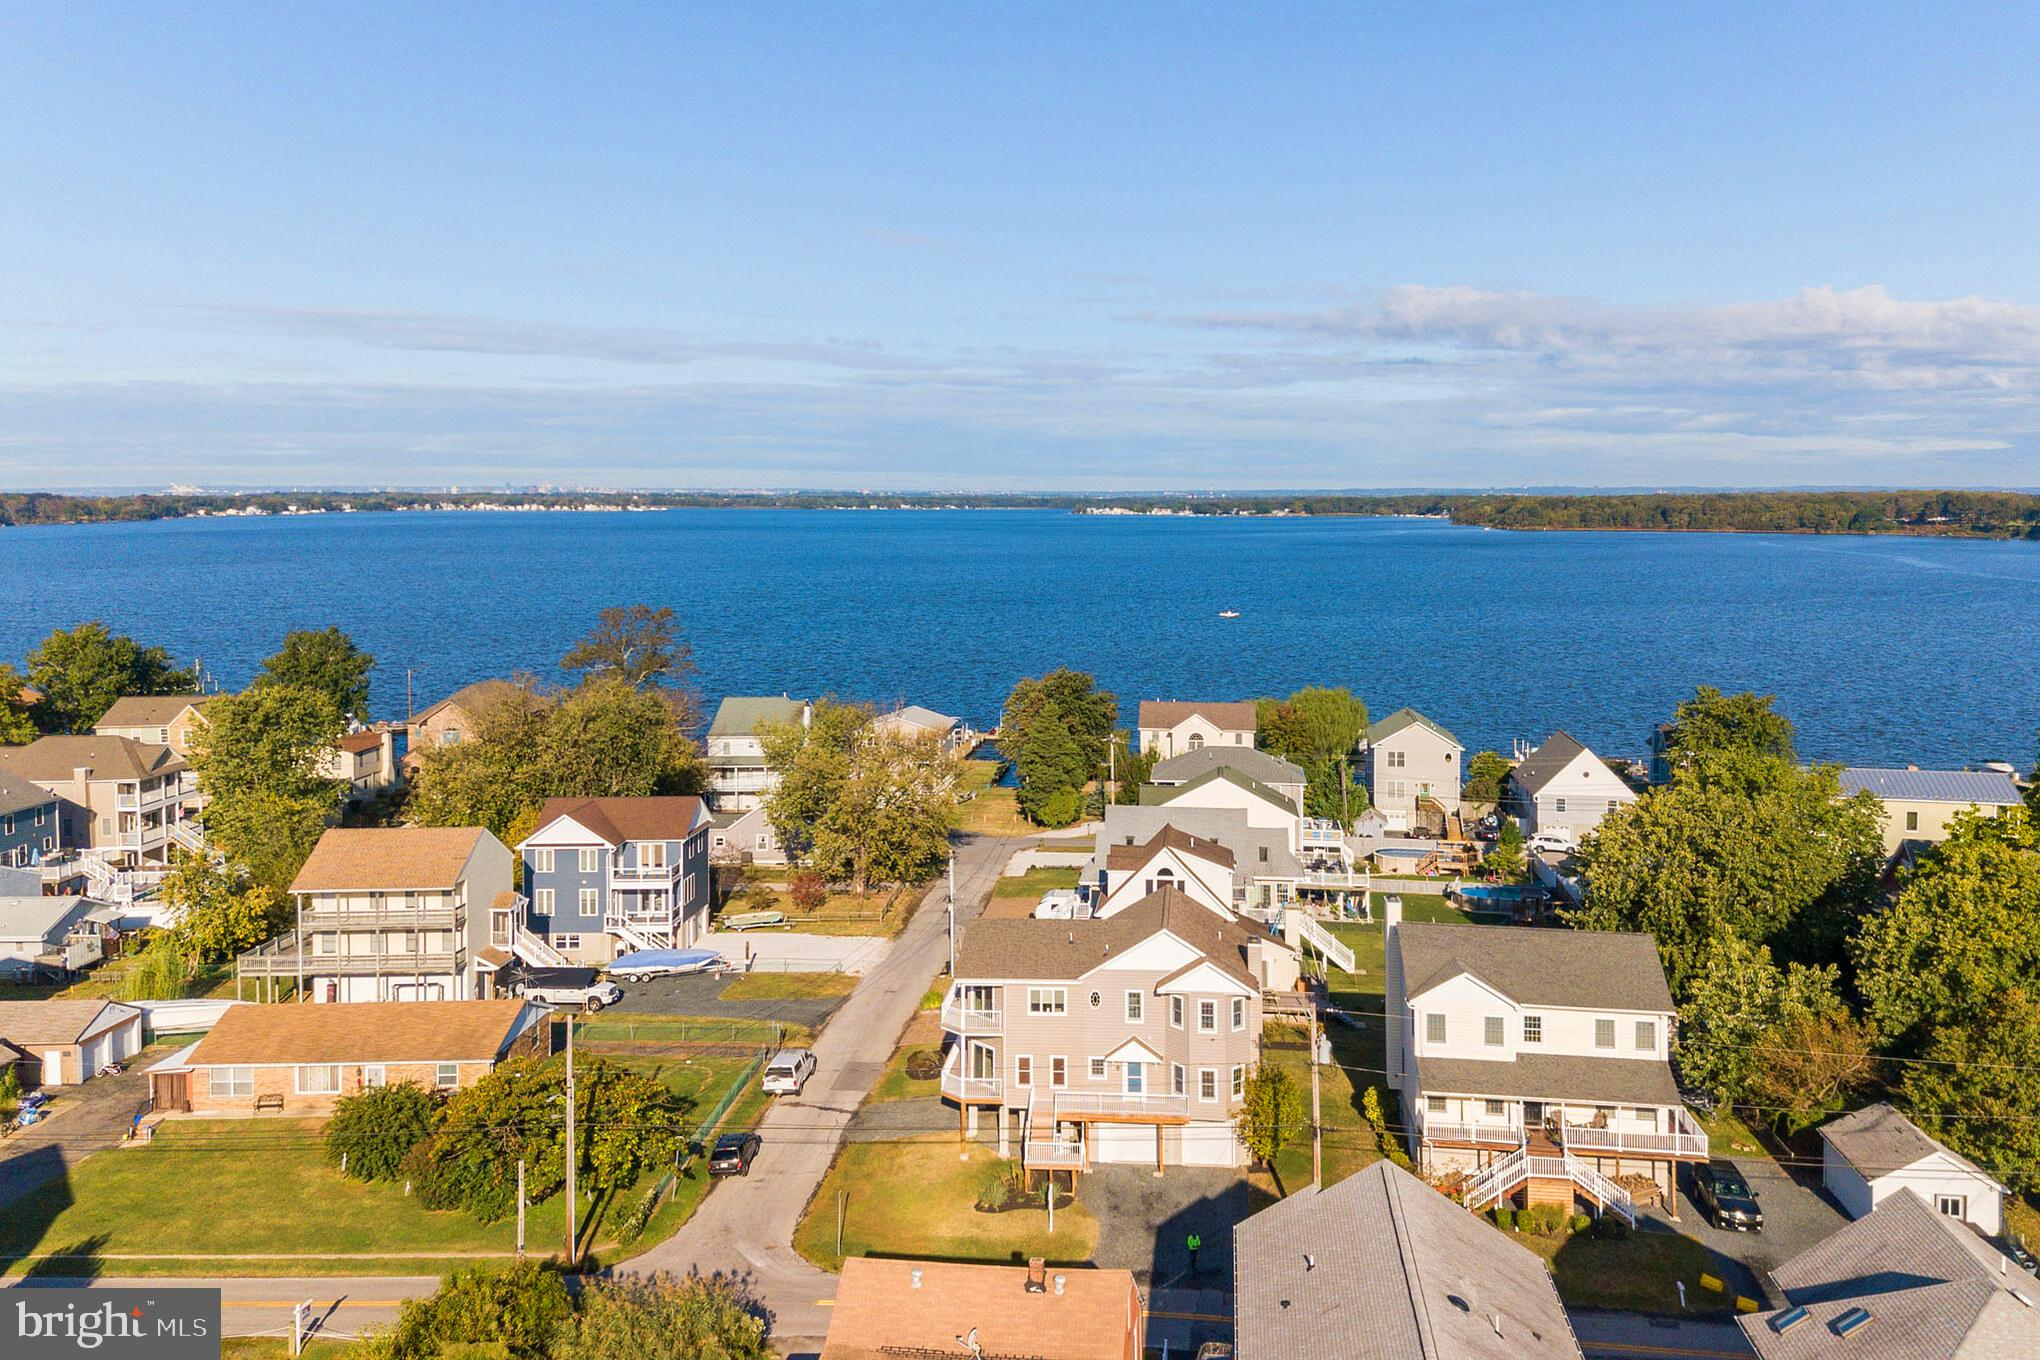 9116 CUCKOLD POINT ROAD, BALTIMORE, MD 21219